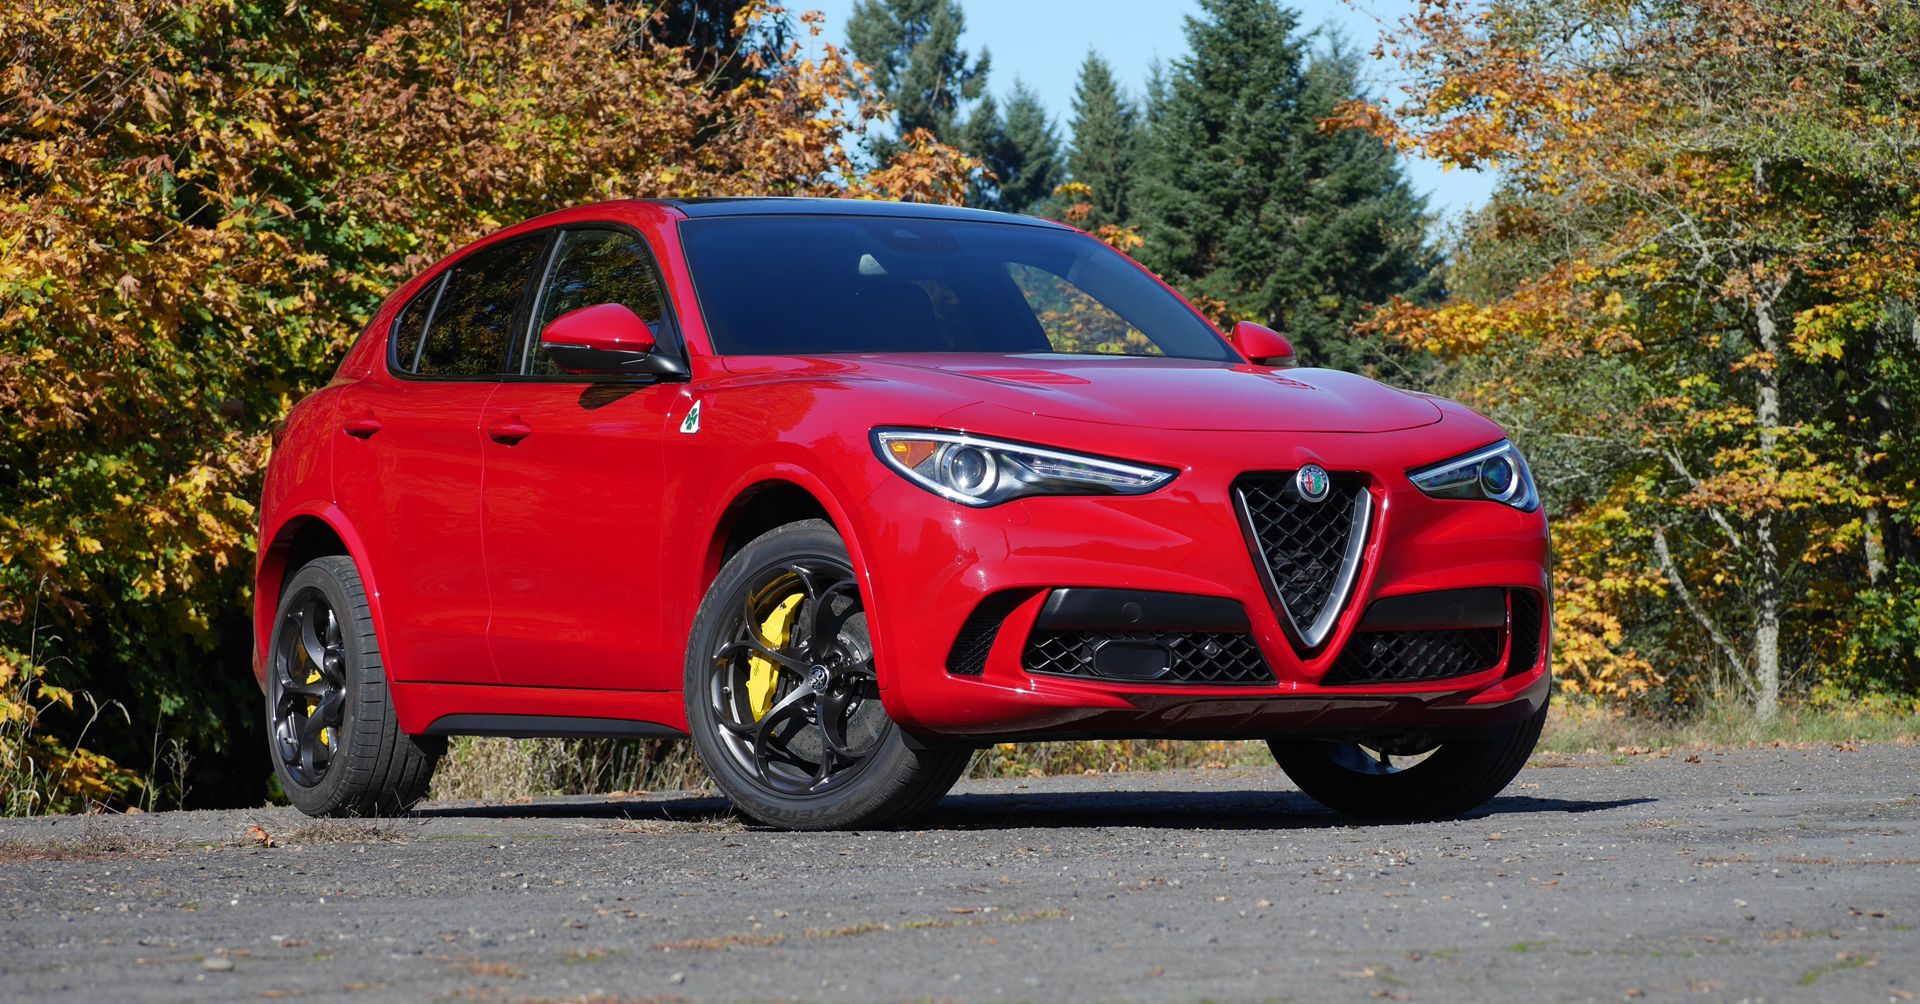 Adding to the Lineup of the Alfa Romeo Stelvio